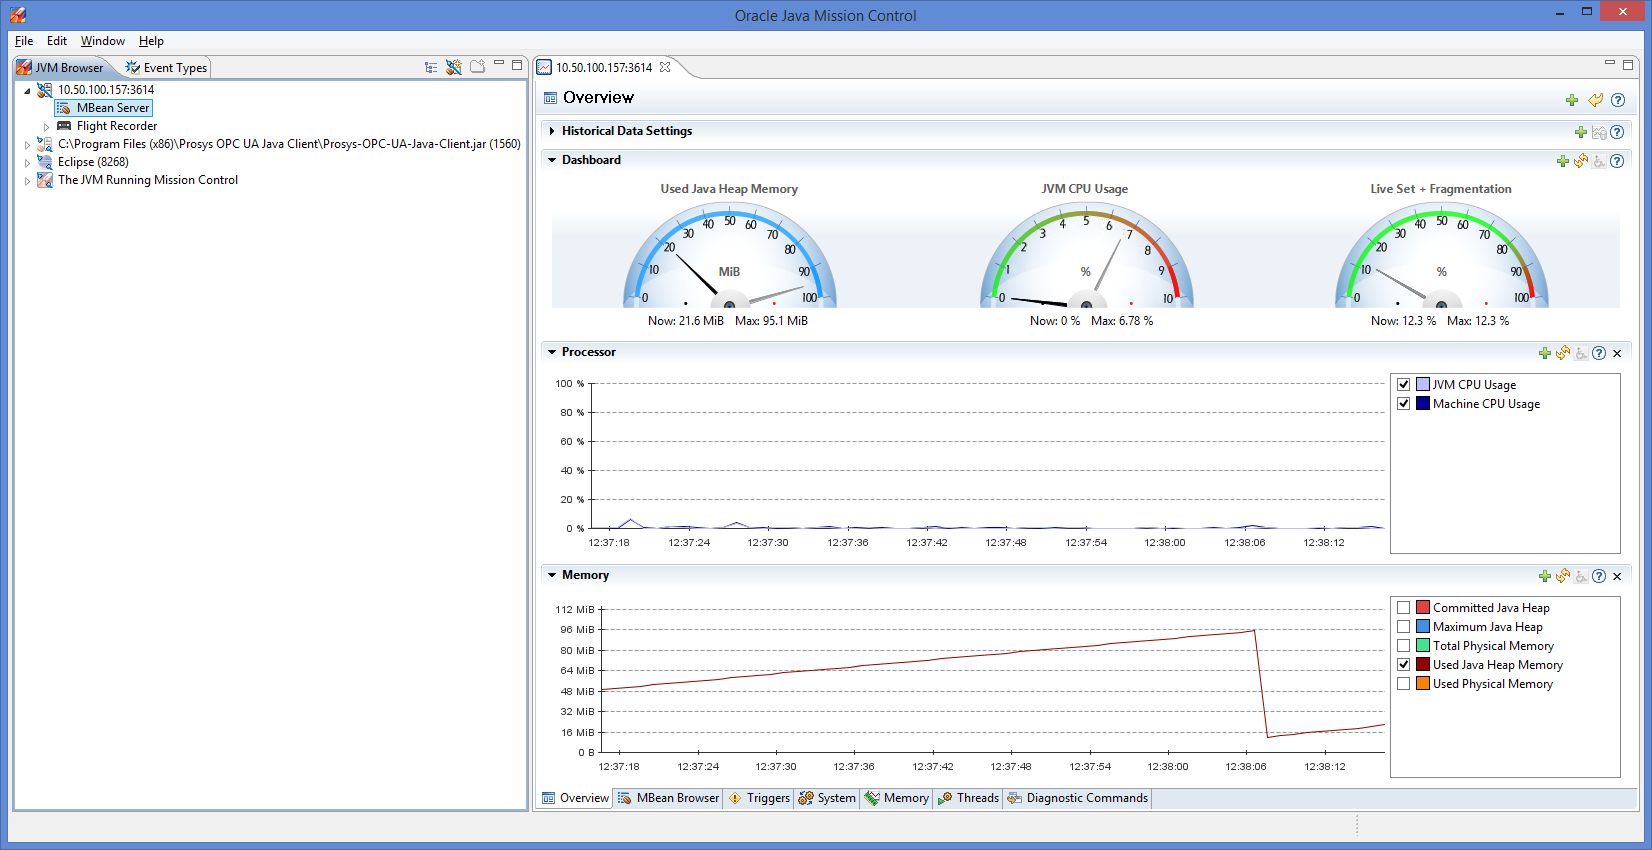 Using Java Mission Control for performance monitoring